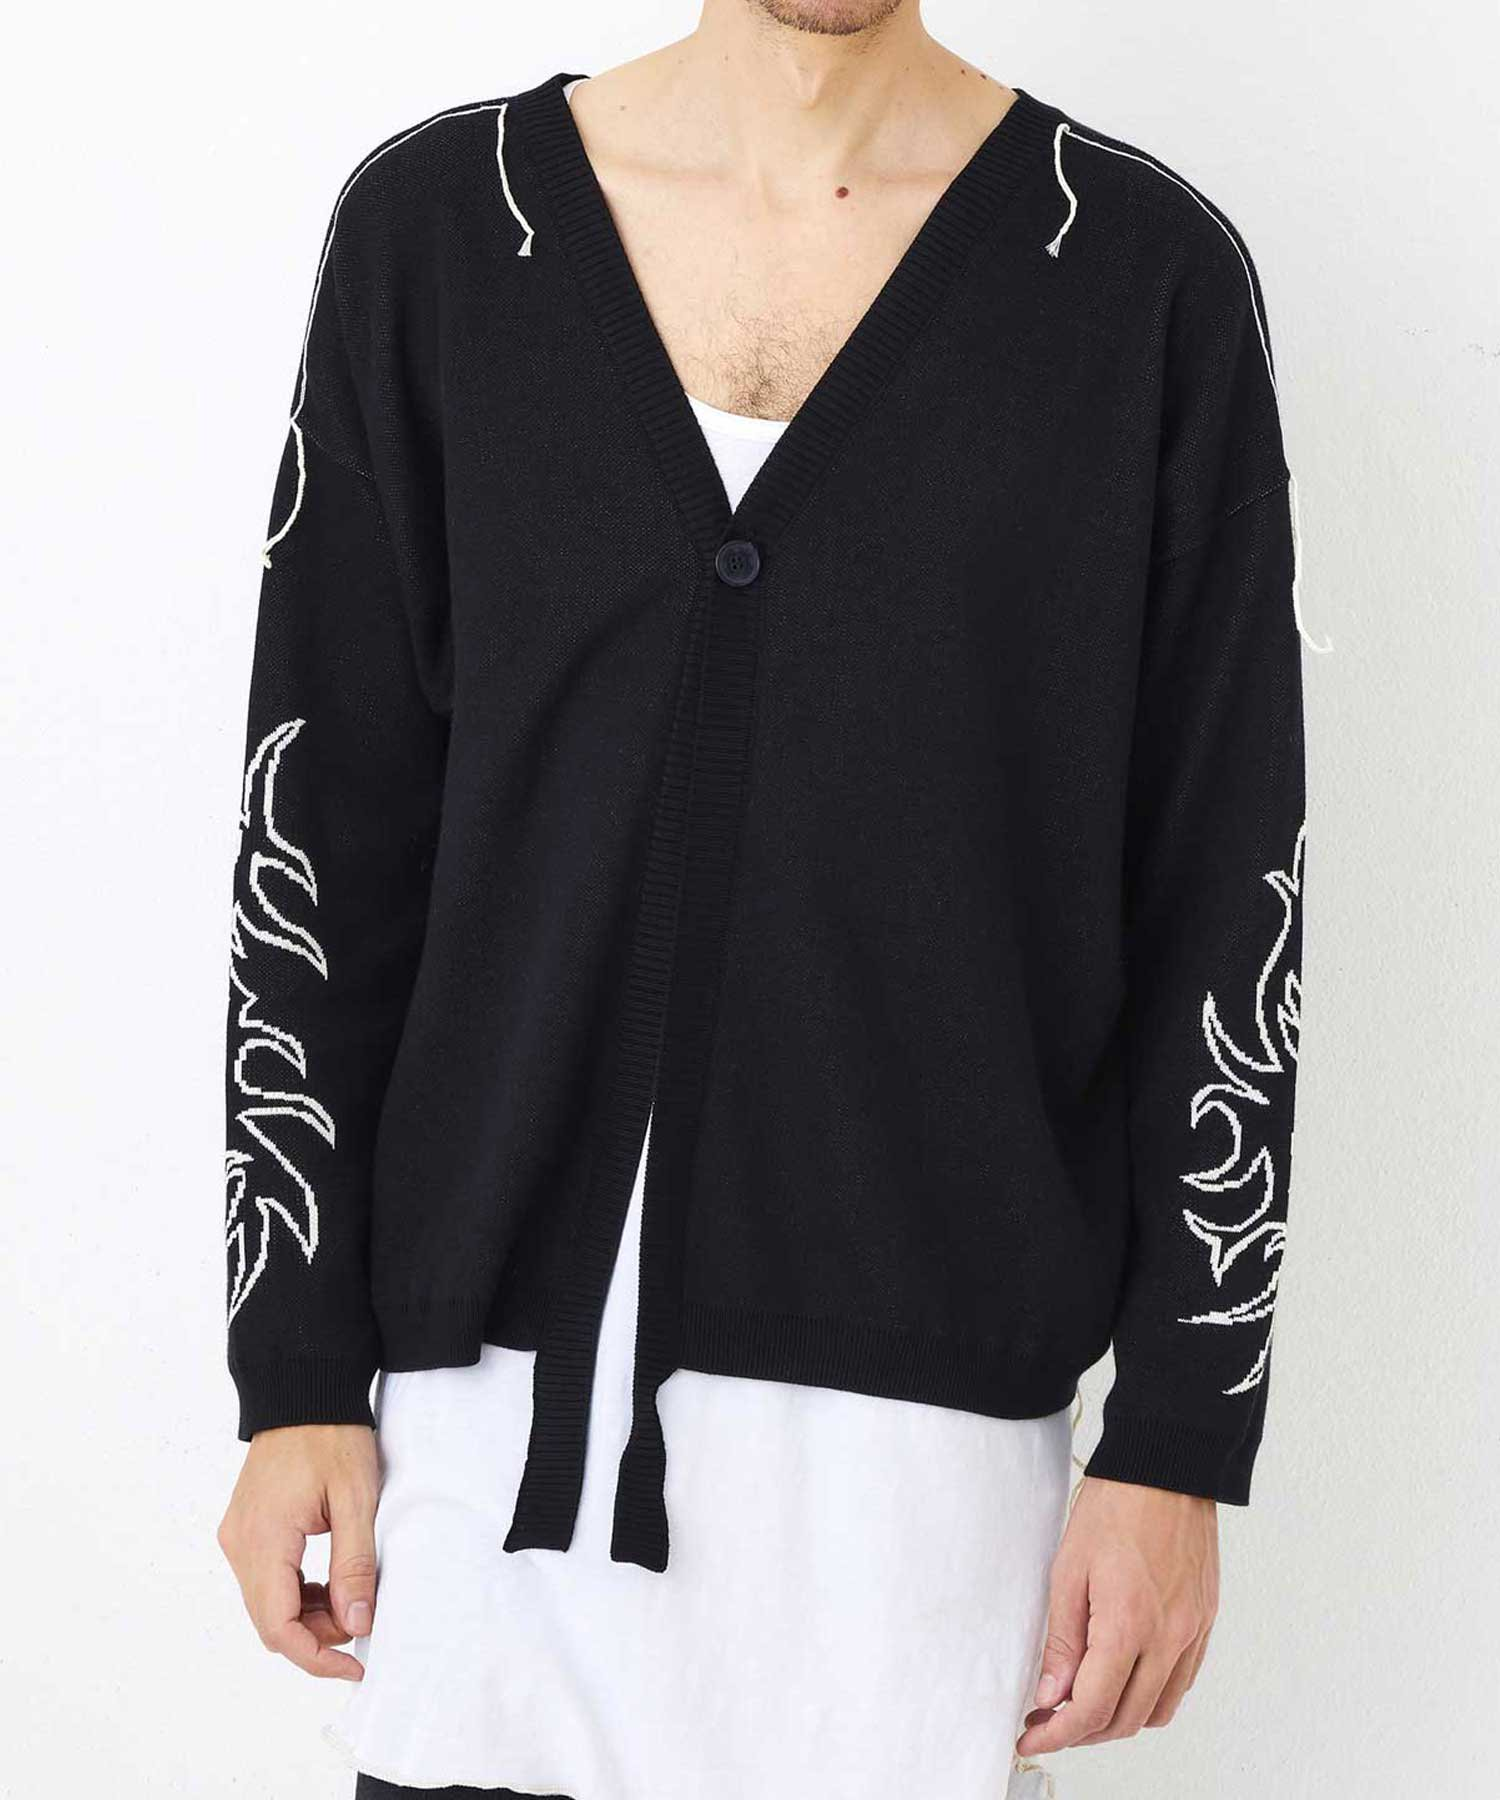 V NECK CARDIGAN【Black】